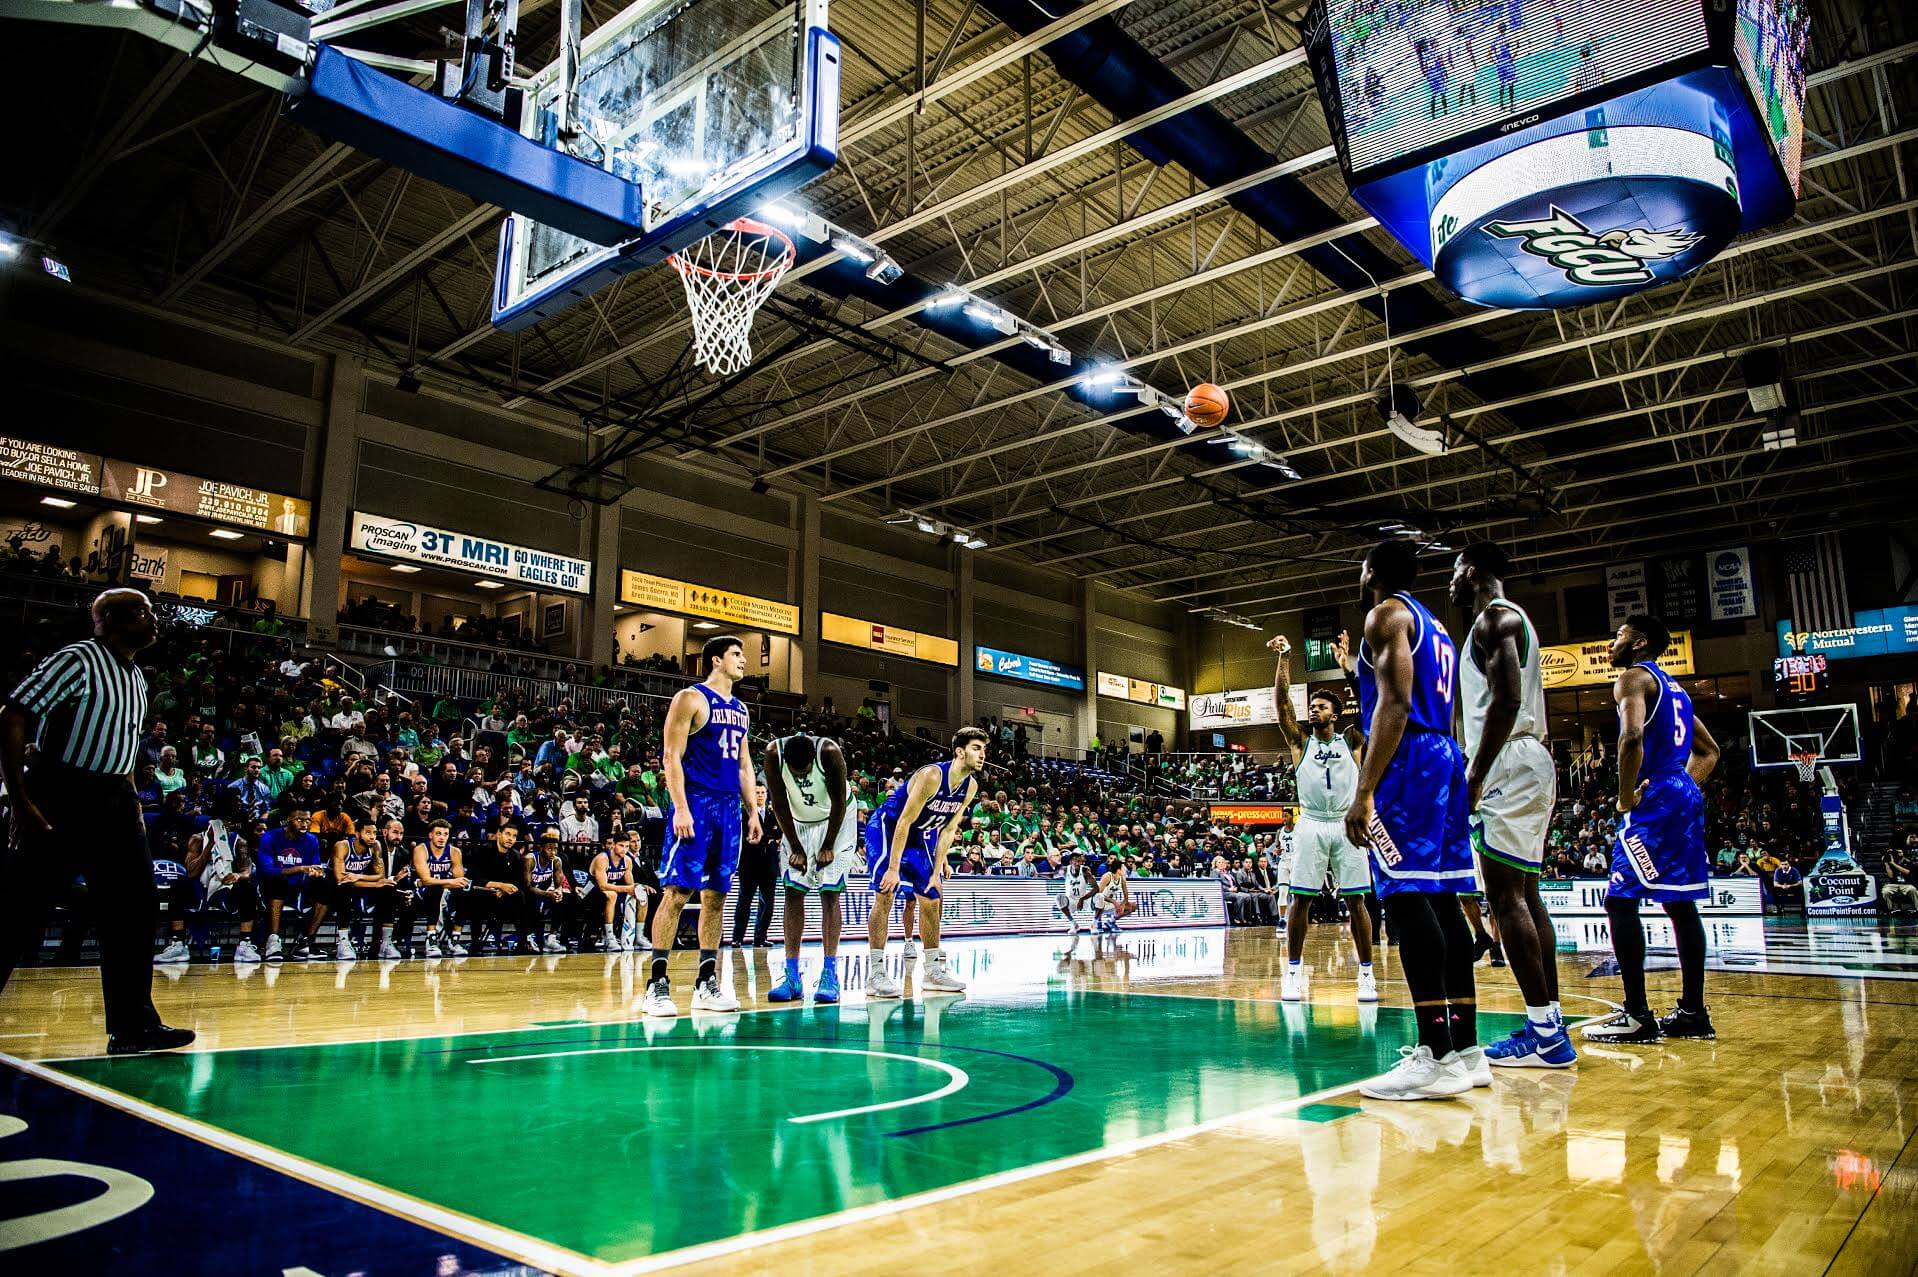 FGCU men's basketball falls to Michigan State after controversial ending